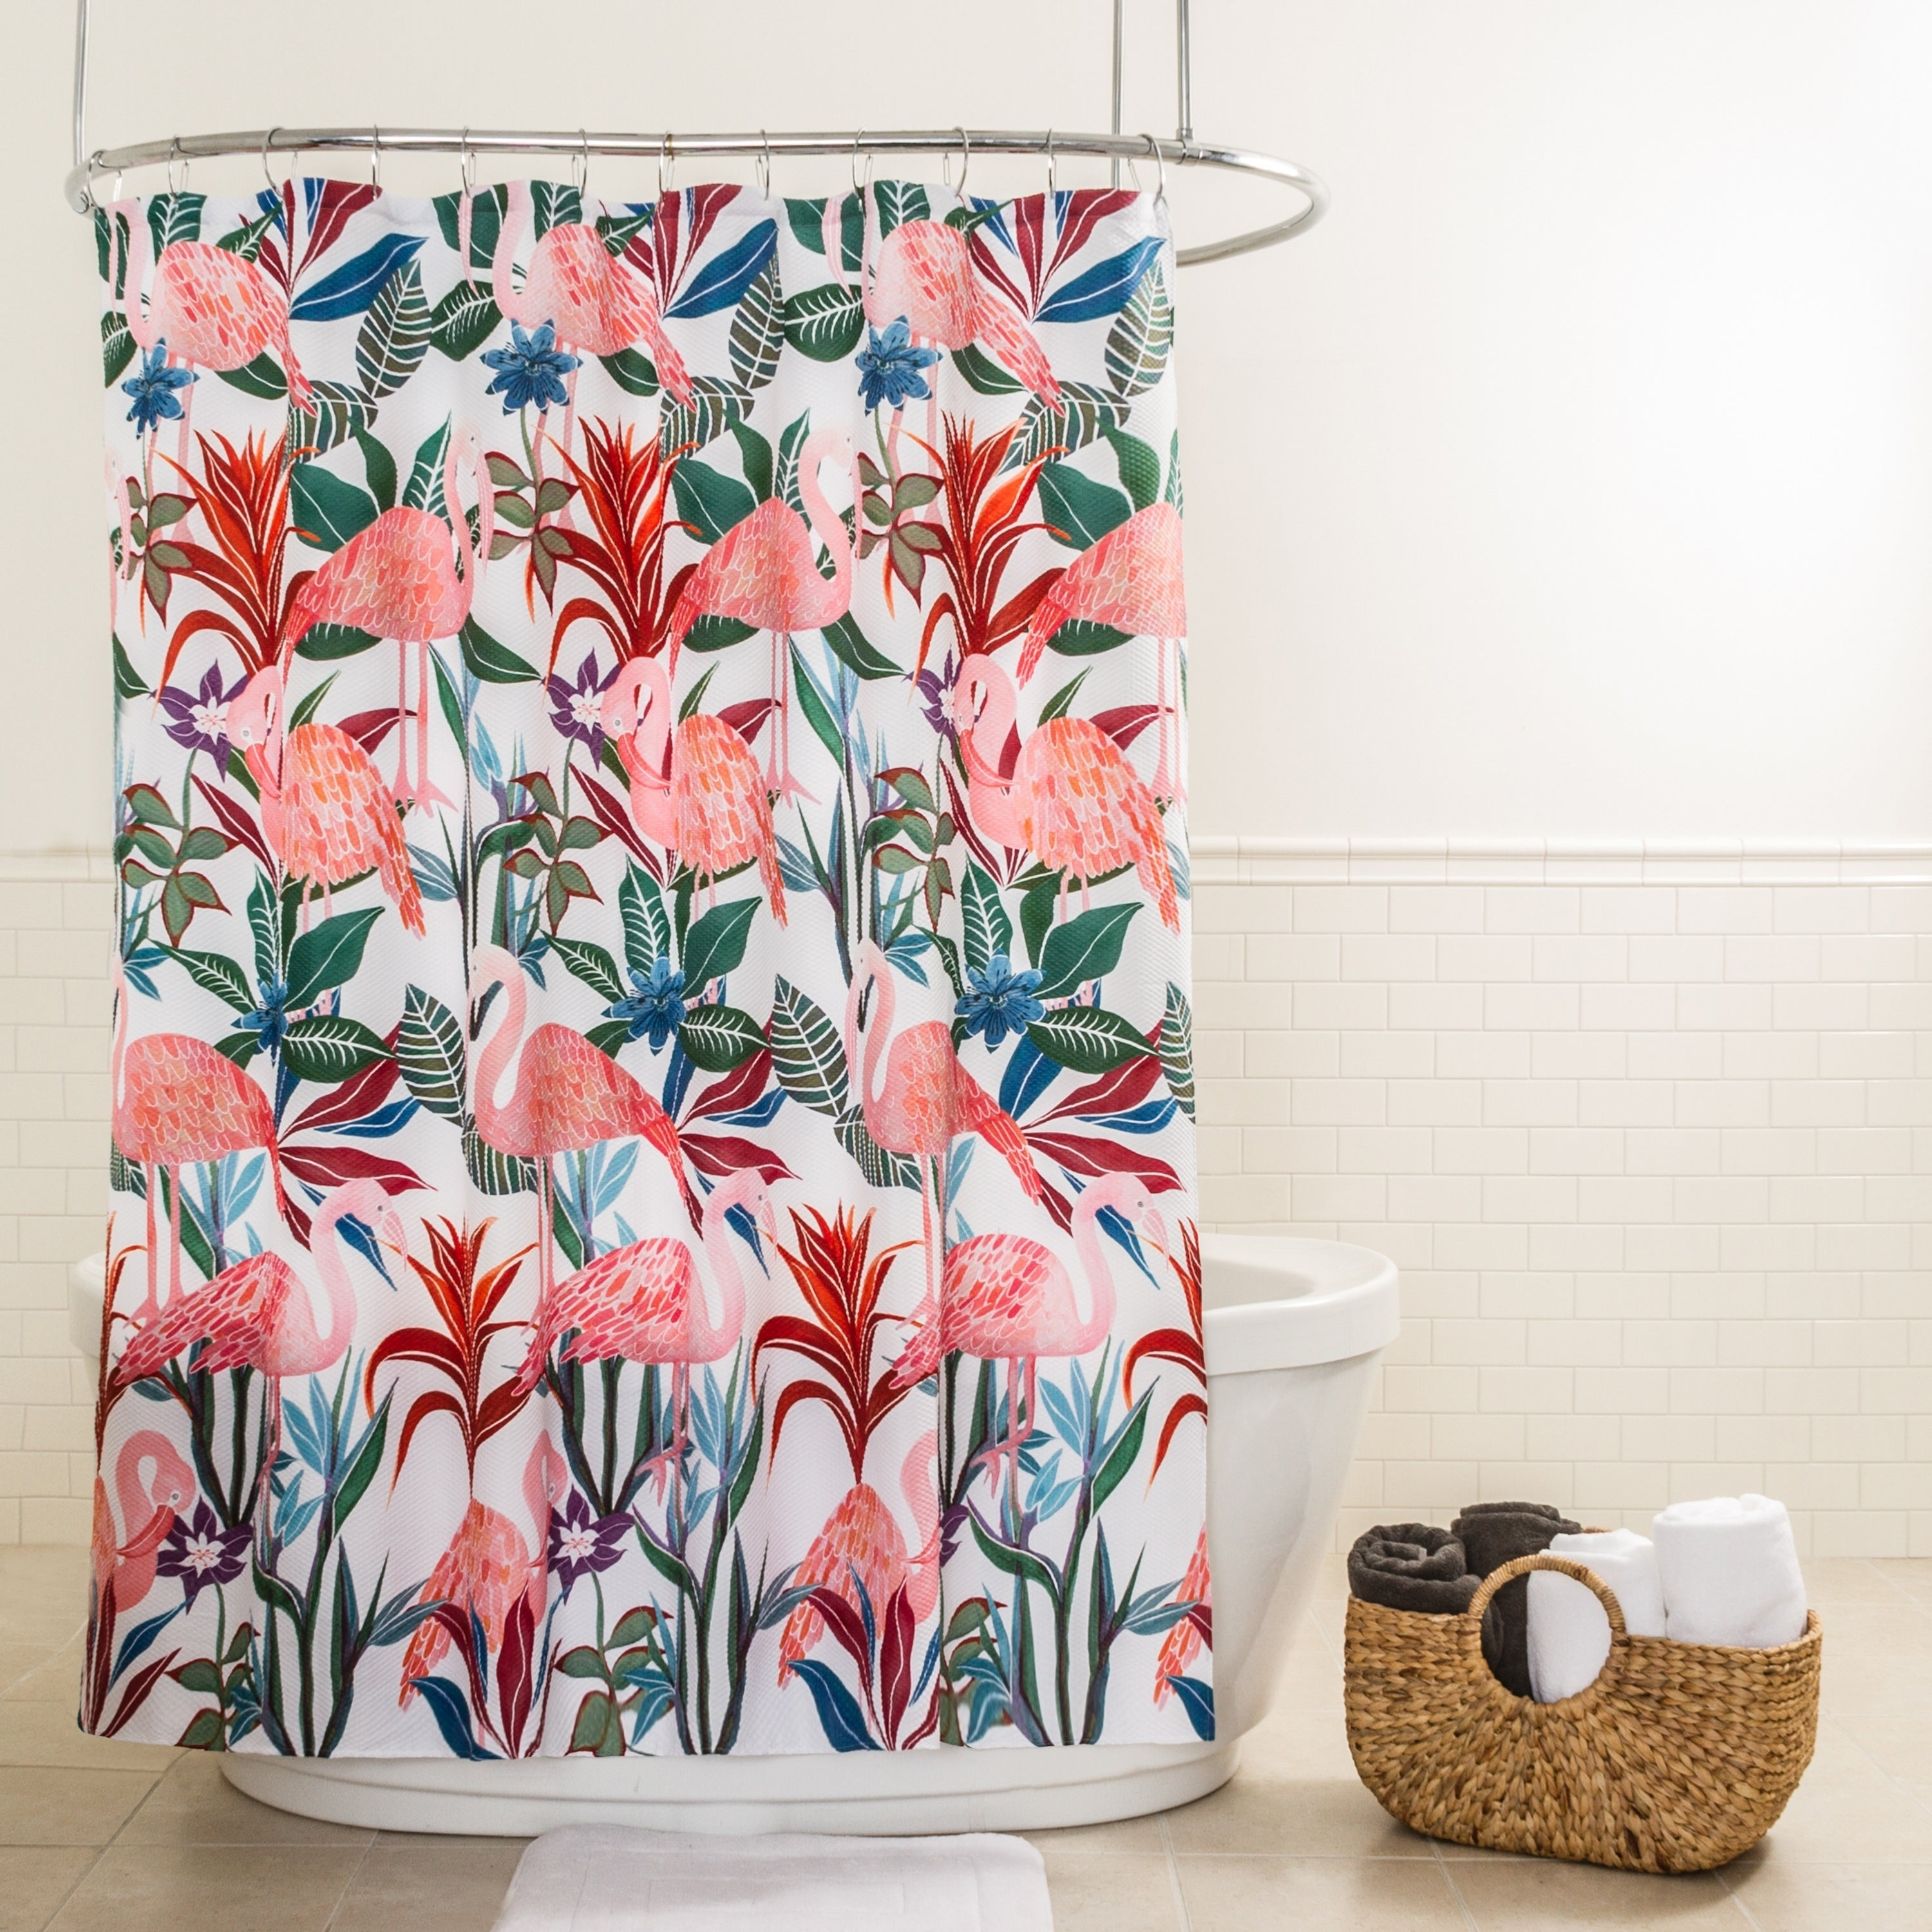 Splash Home Tropicana Flamingo Polyester Fabric Shower Curtain 70 X 72 Pink Blue